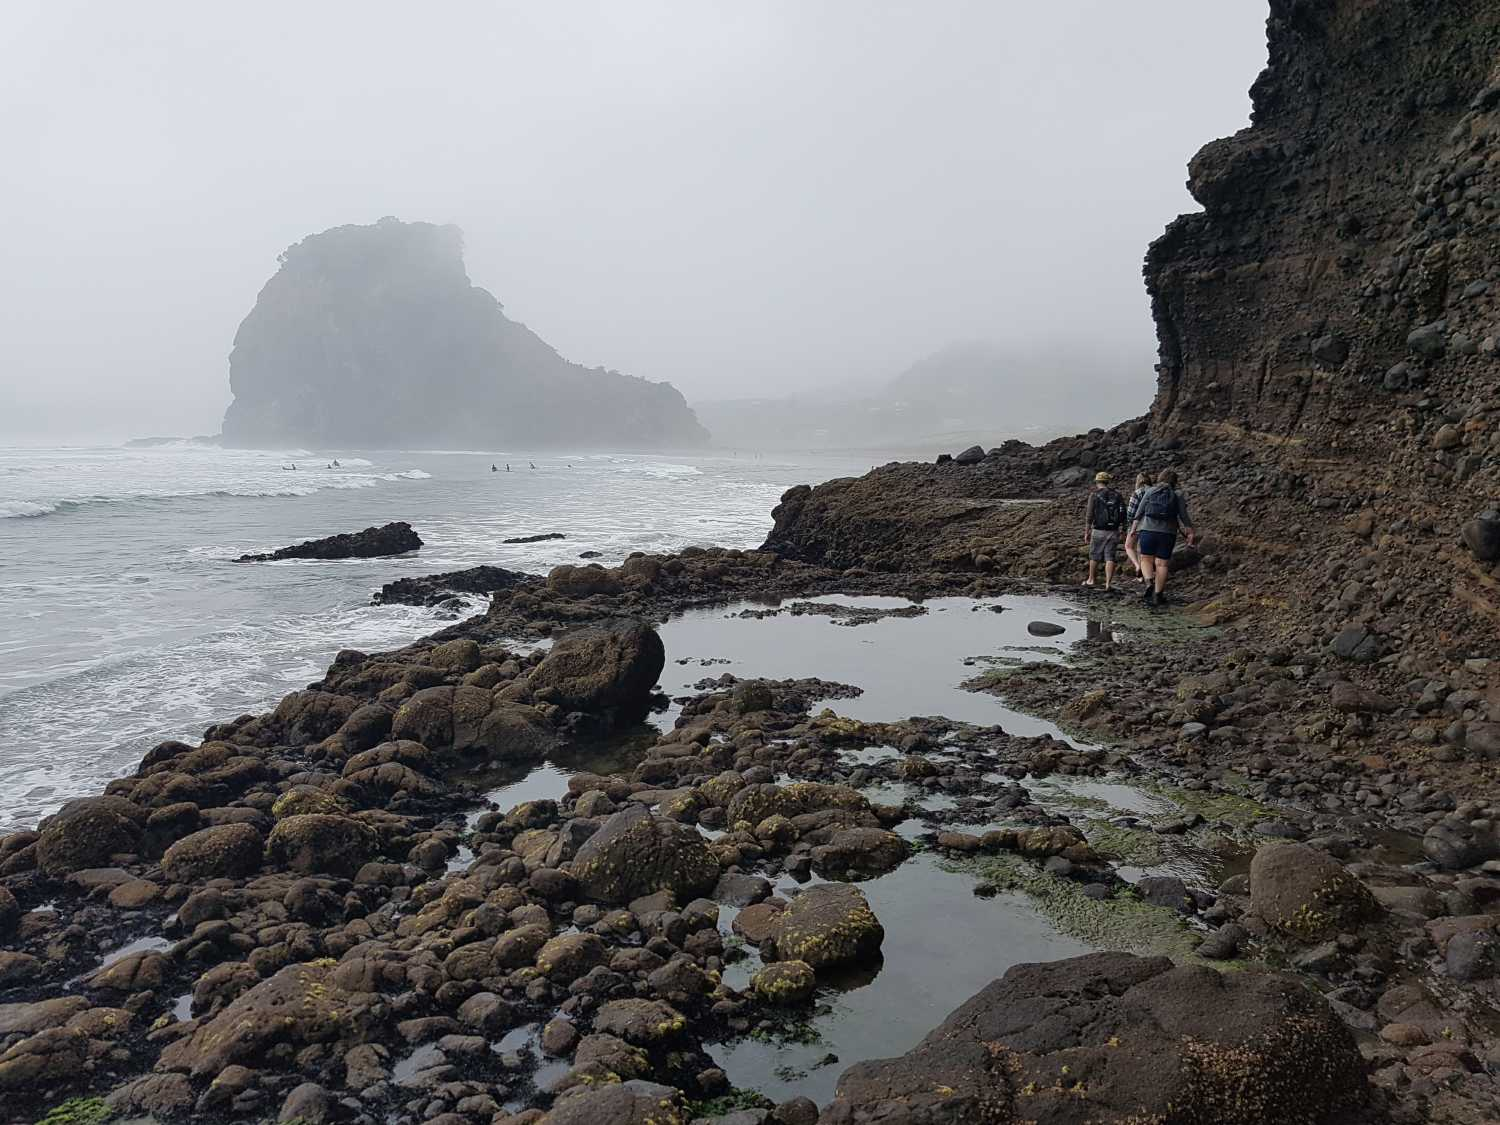 Piha's lion rock obscured by mist